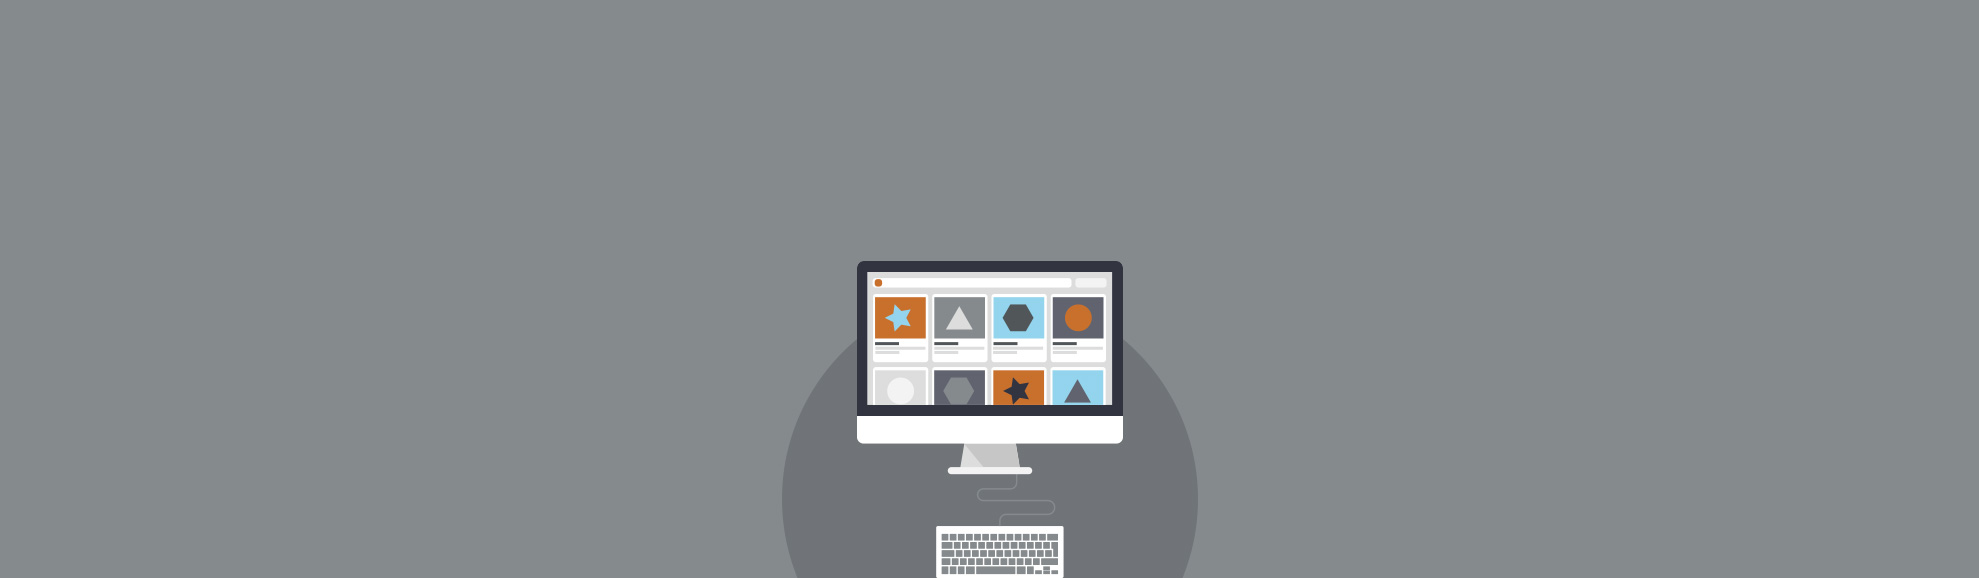 Top 10 Email Design Boards on Pinterest